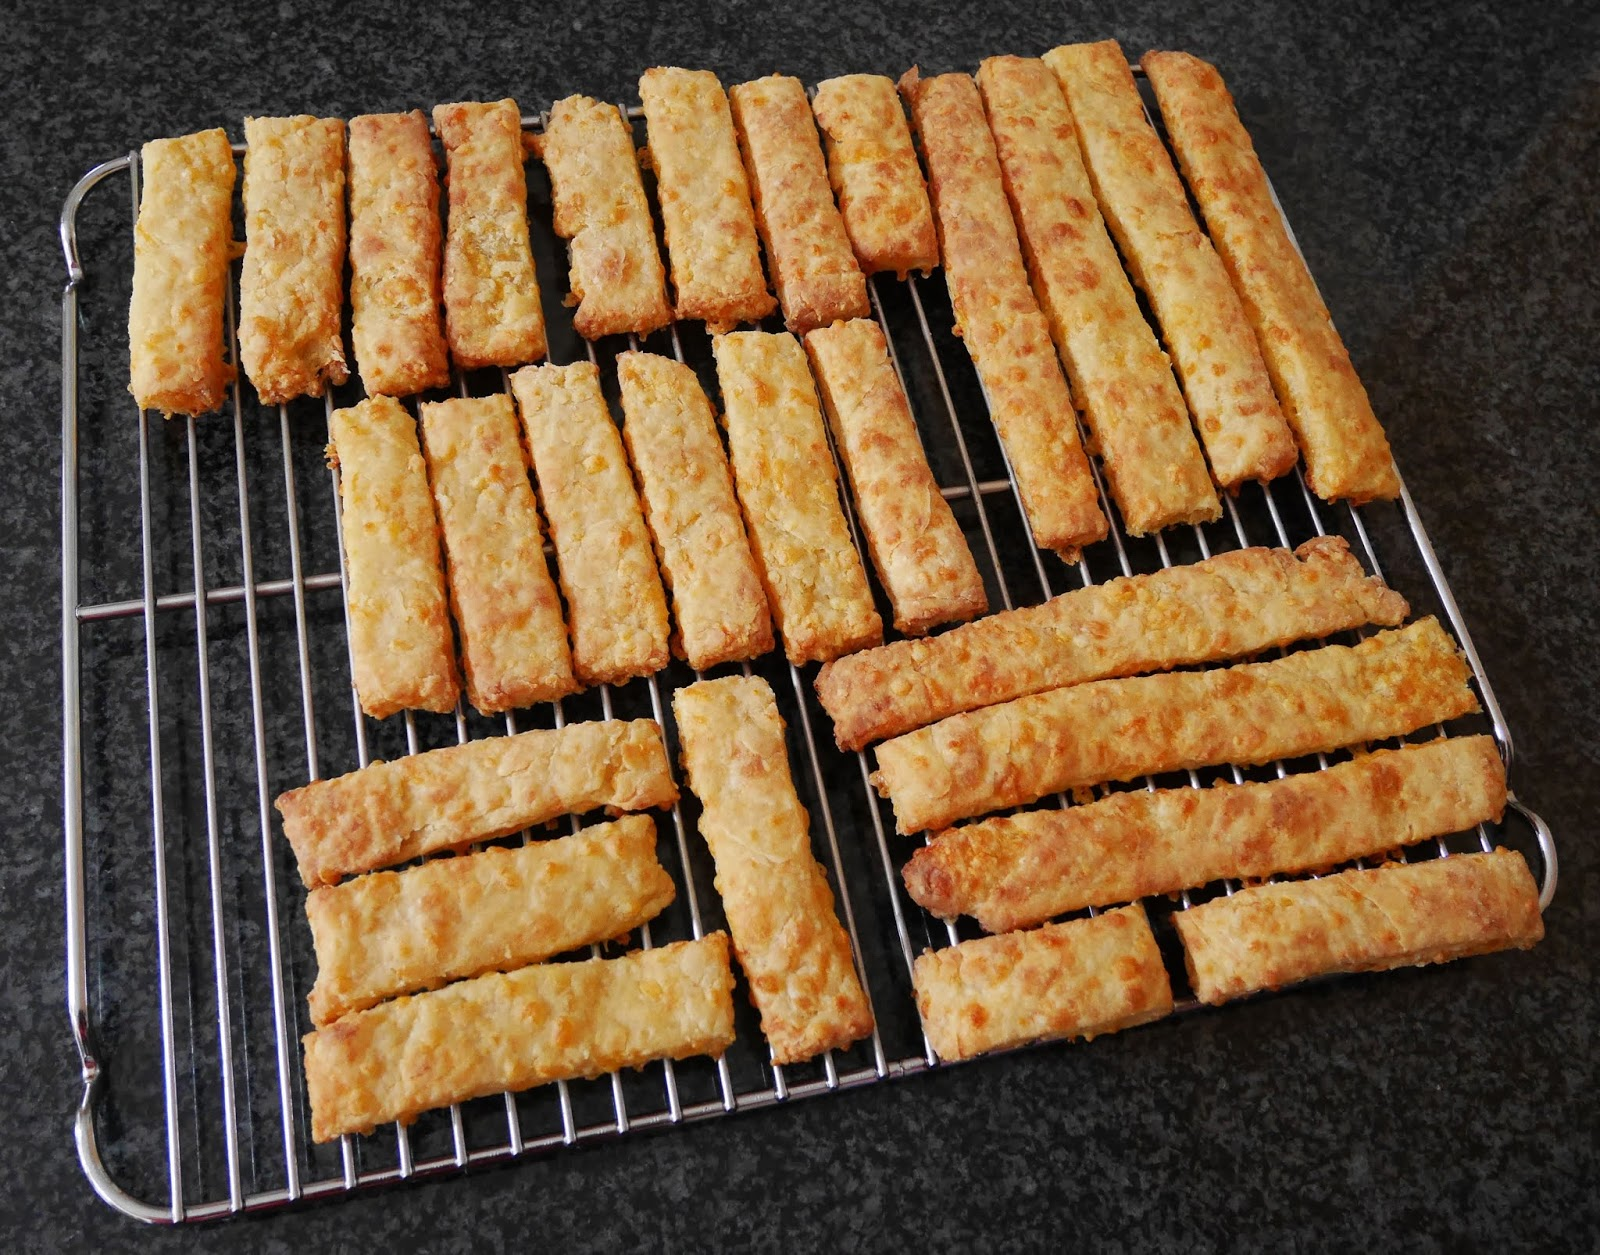 Homemade cheese straws for the afternoon tea